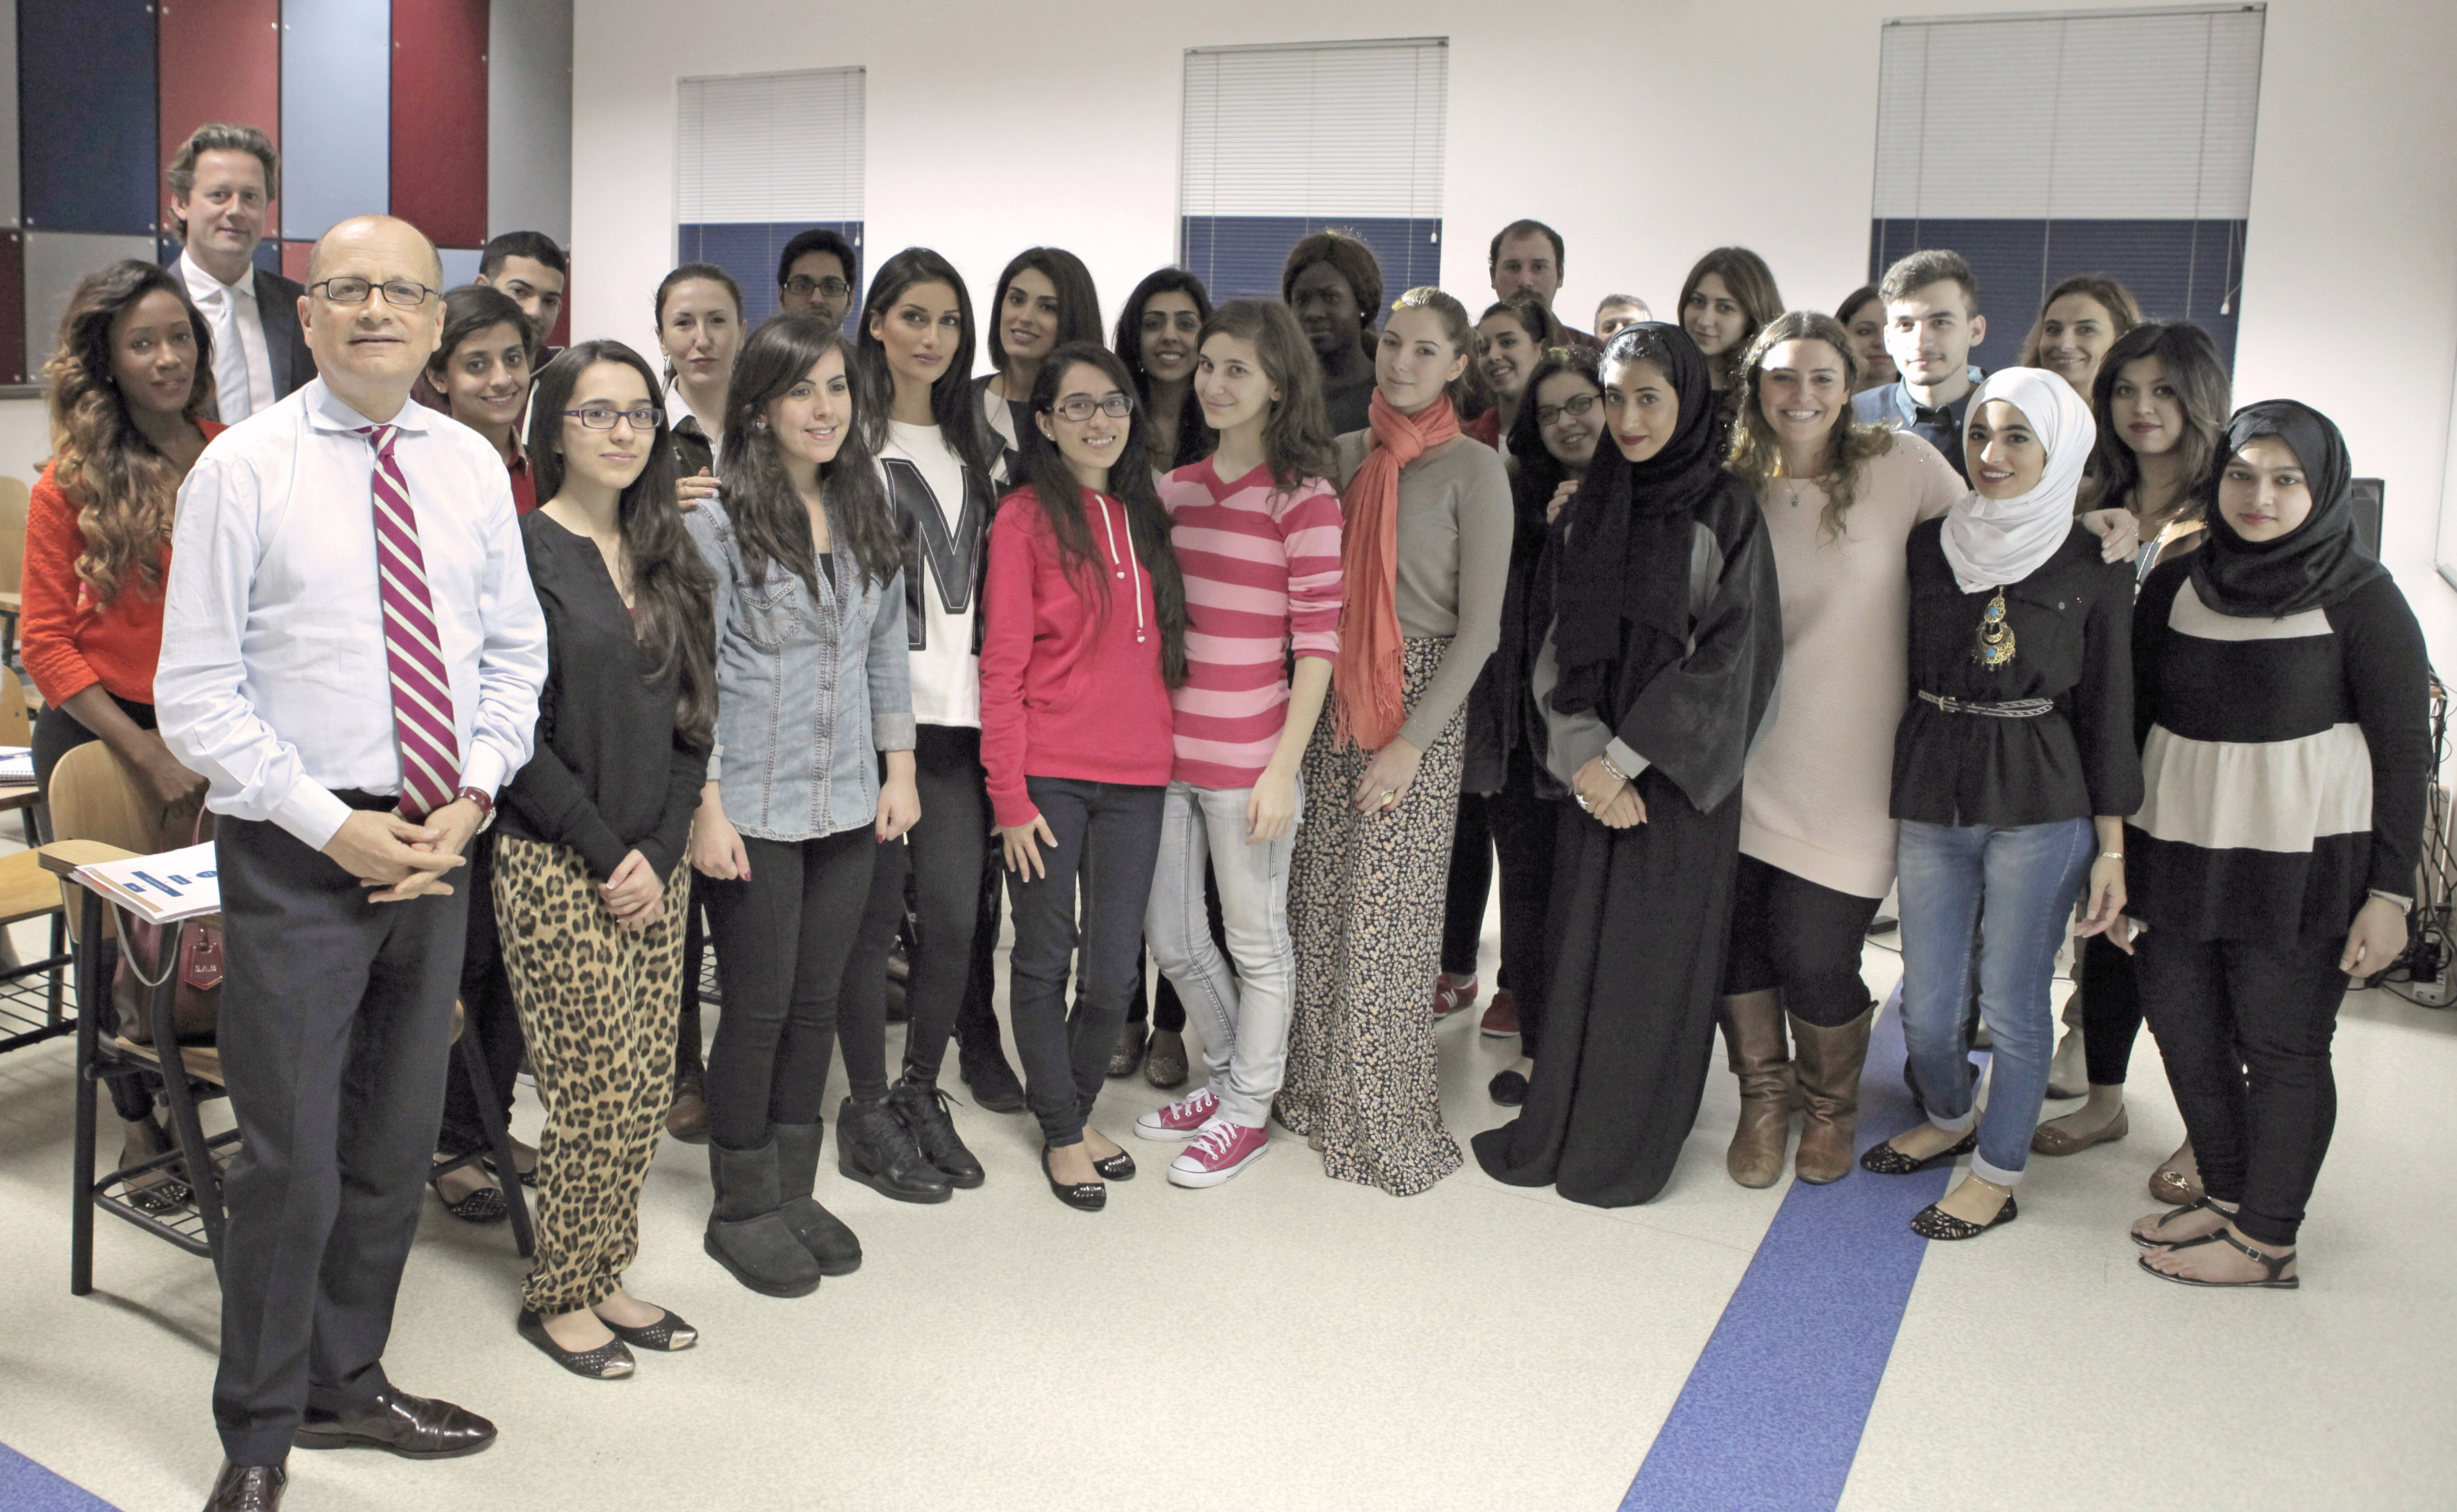 jwt-partners-with-aud-for-integrated-marketing-communications-course